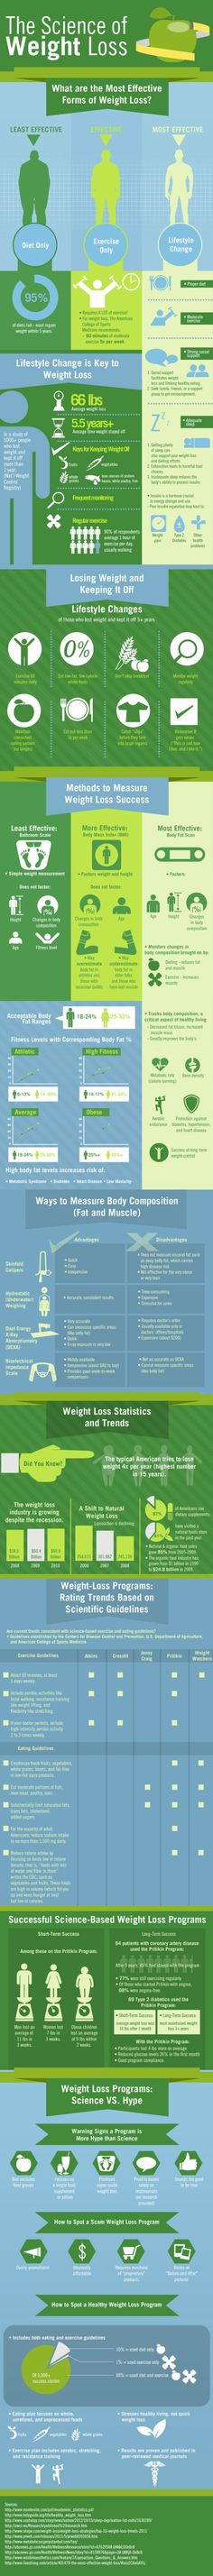 Infographic: The key to weight loss